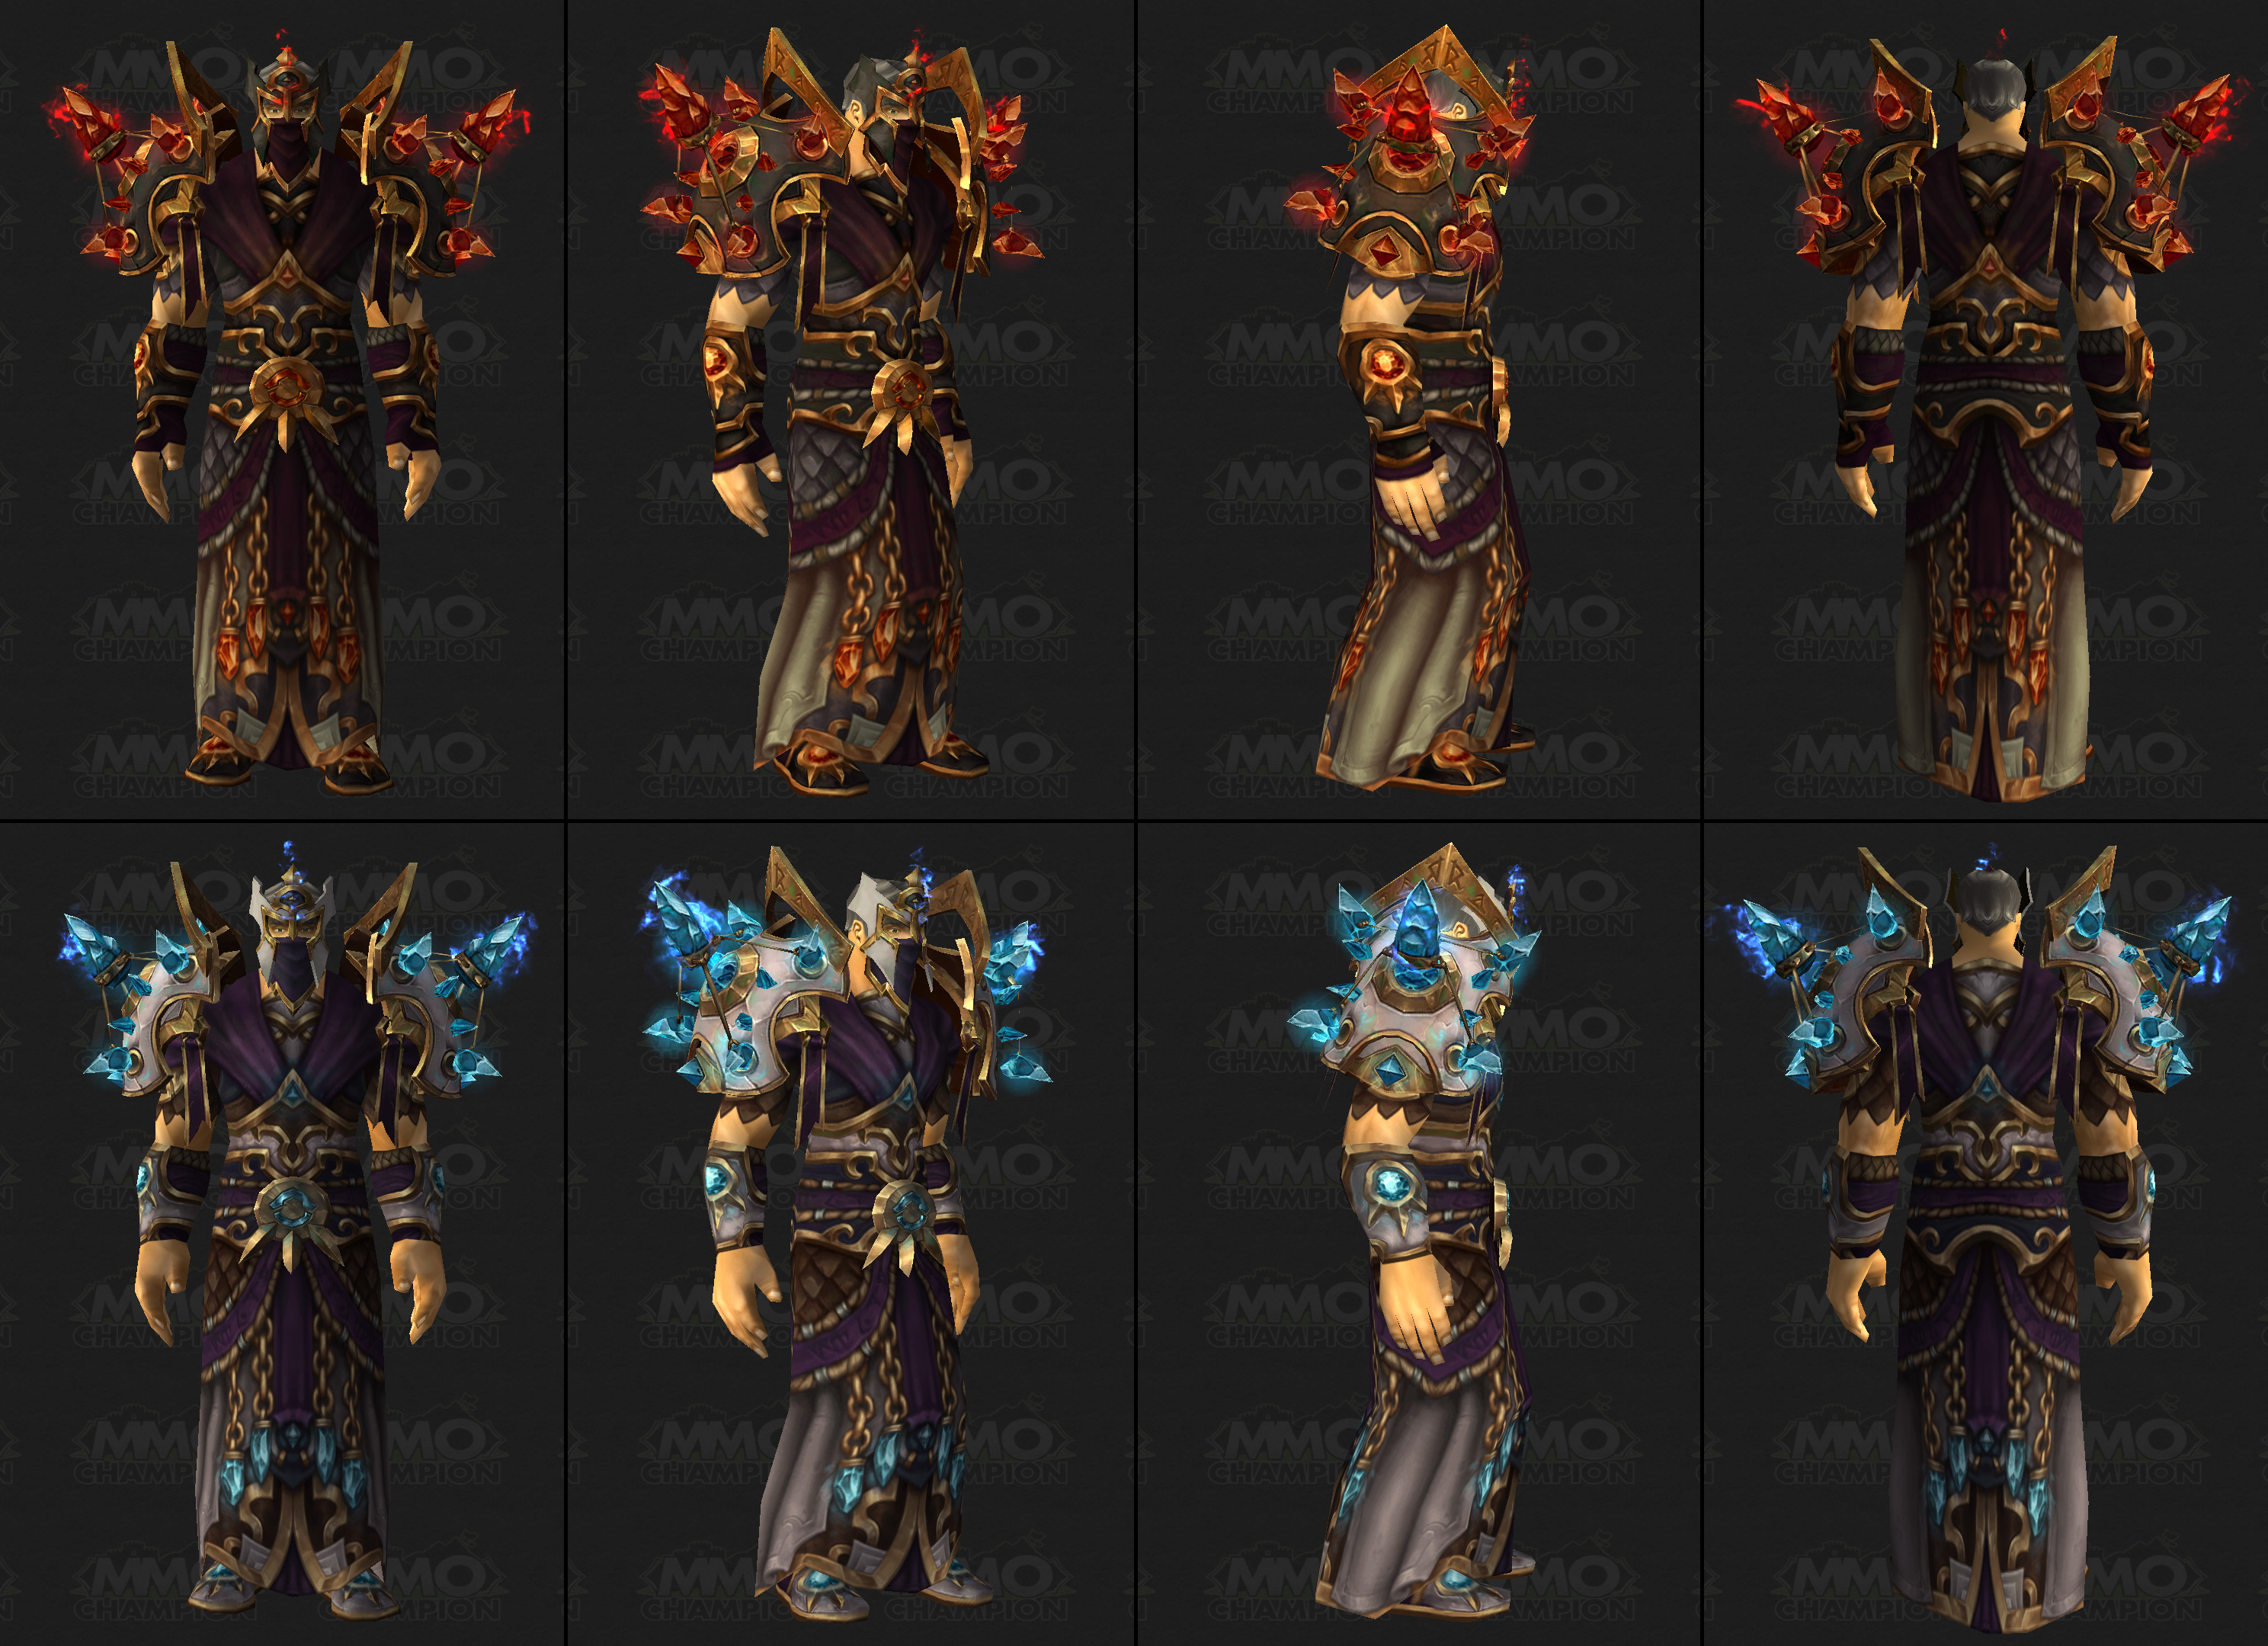 Tier 17 Mage and Monk Armor Sets May 27 Hotfixes Blue Tweets Faction Change Update & Tier 17 Mage and Monk Armor Sets May 27 Hotfixes Blue Tweets ...